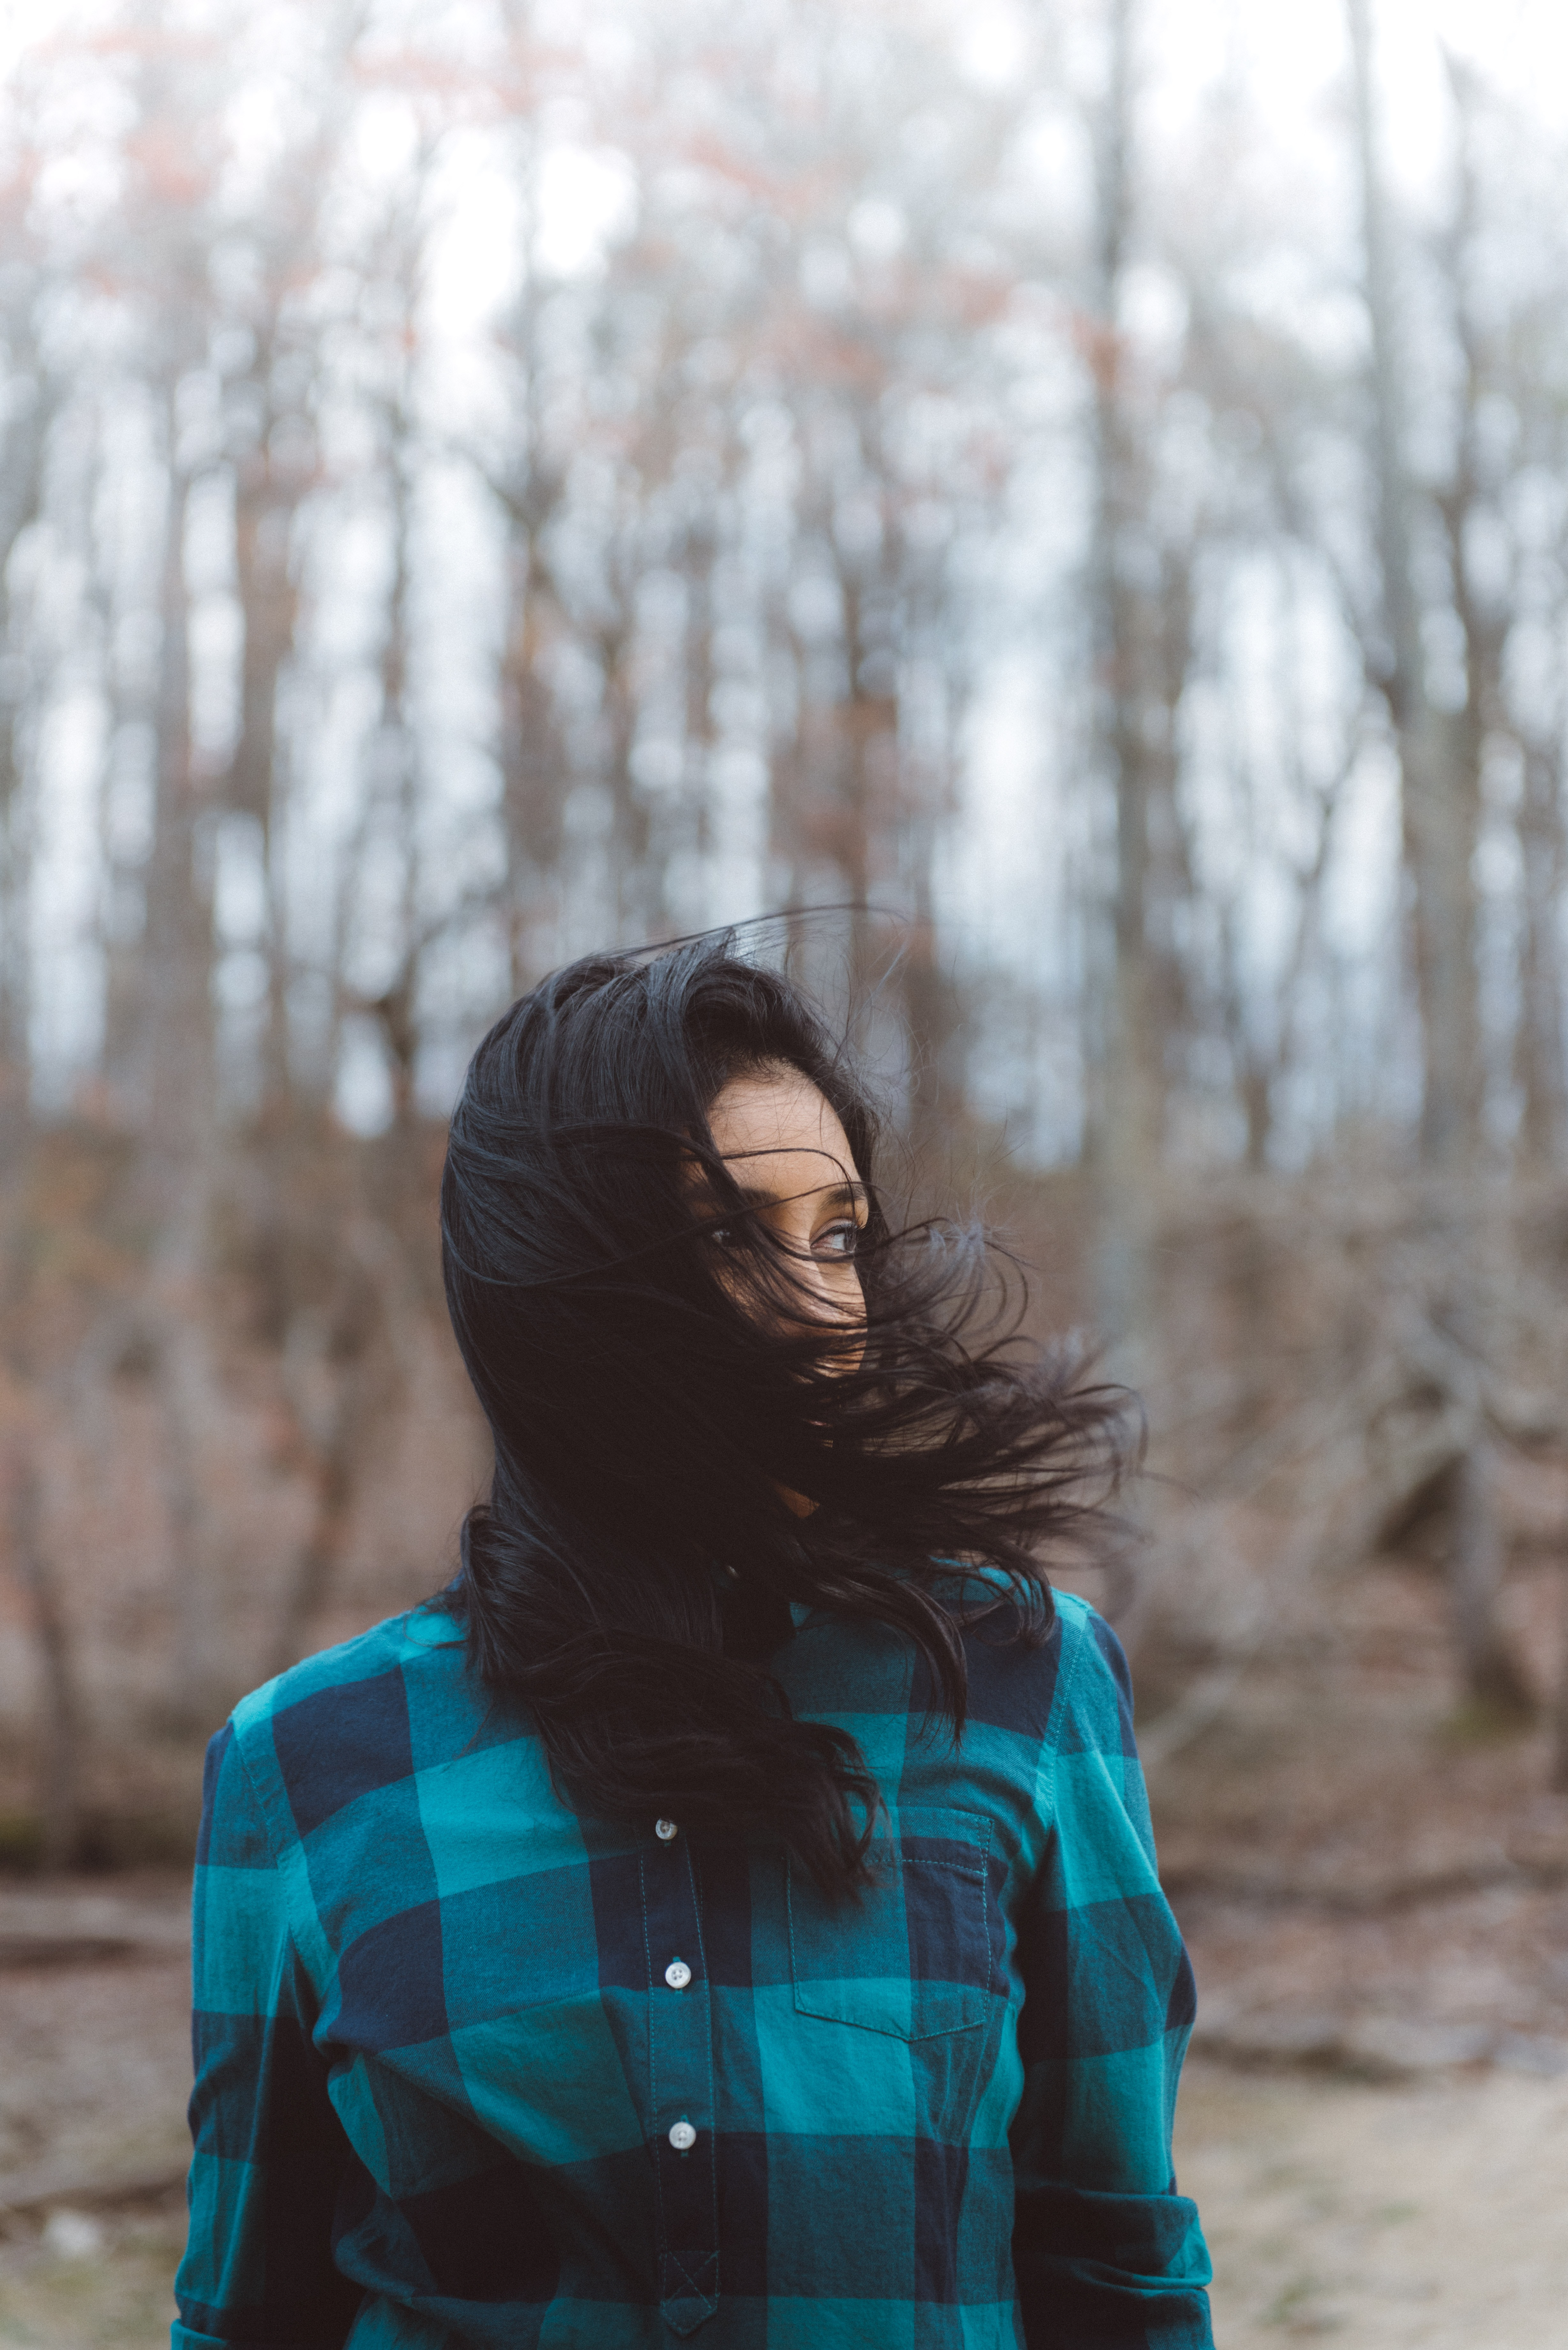 Woman with black hair wearing a blue, plaid flannel shirt in the woods